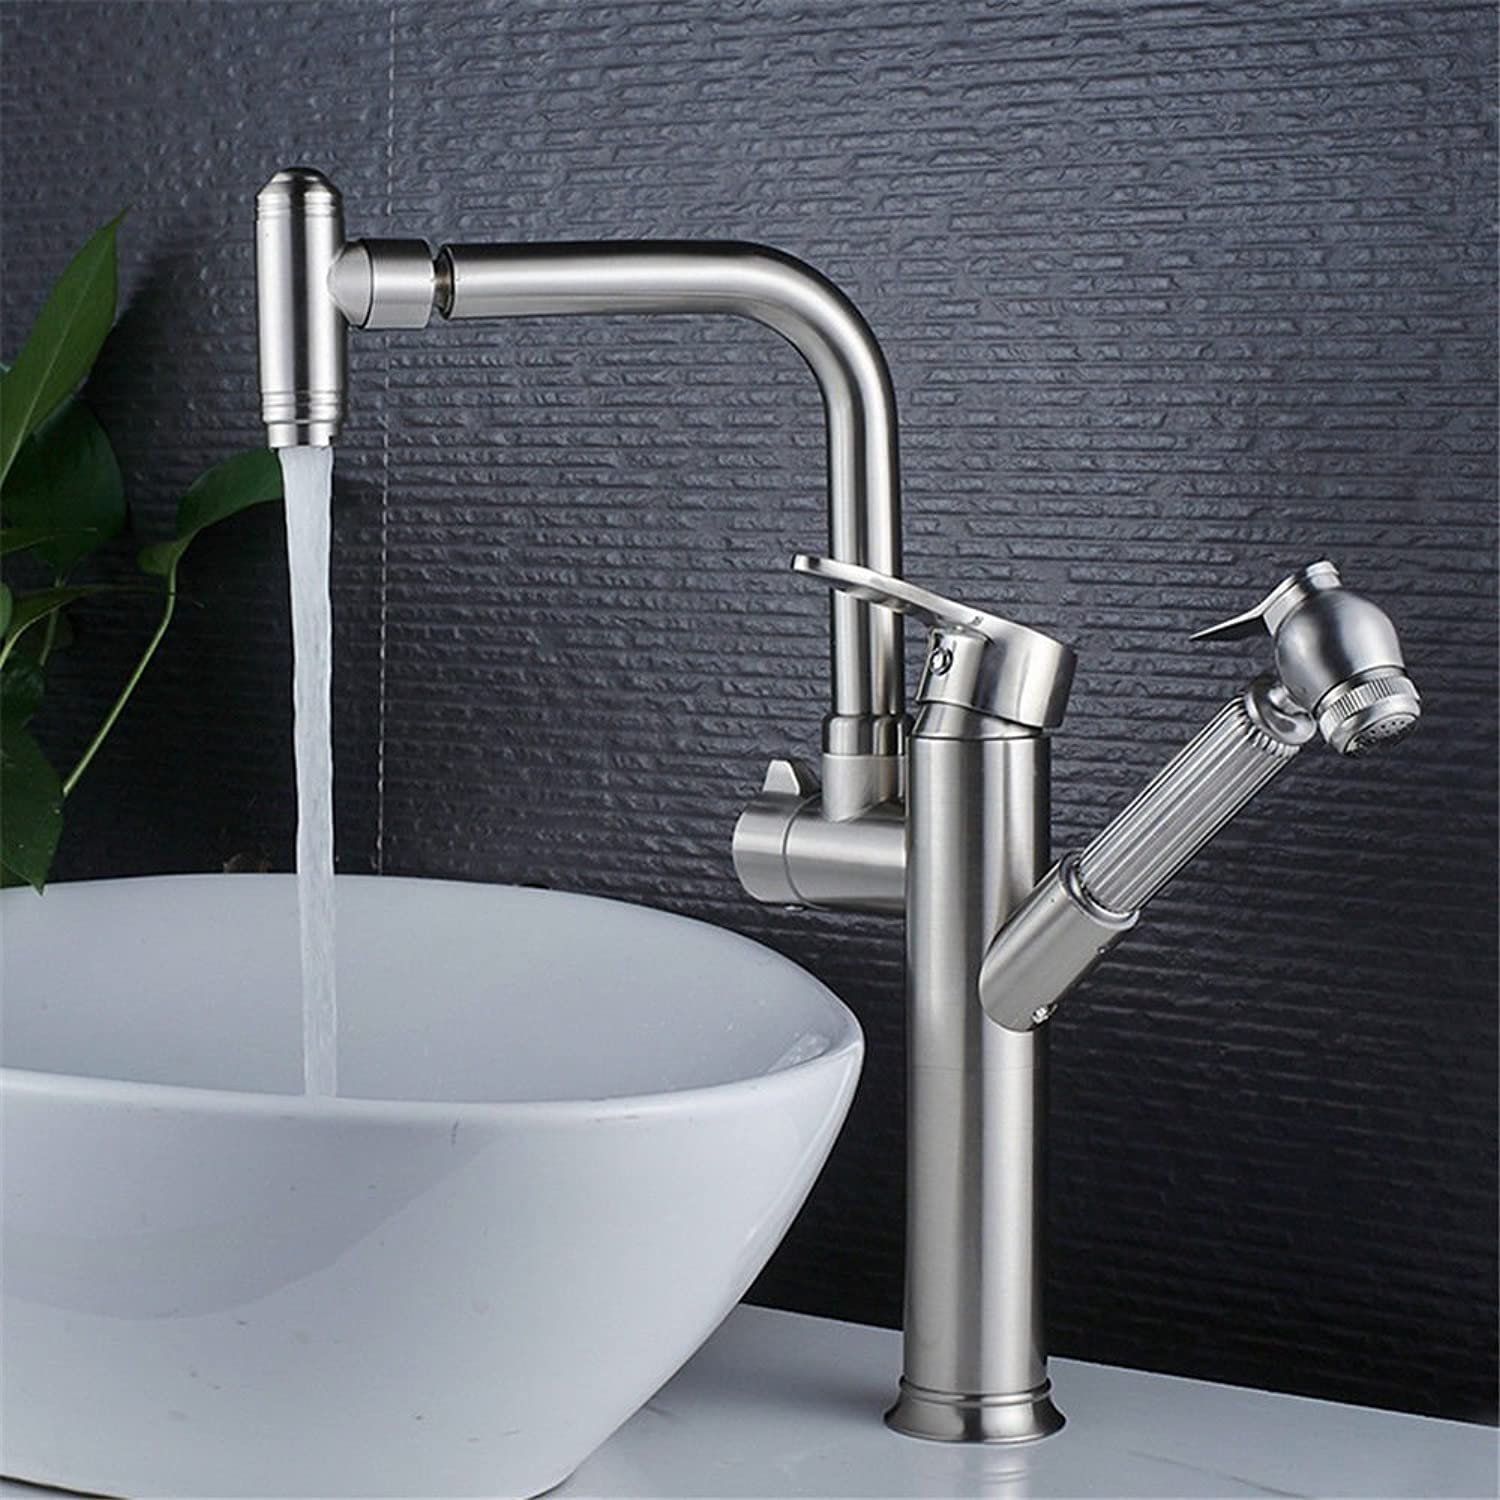 SADASD Contemporary Bathroom Full Copper Basin Faucet Mixer Kitchen Brushed Draw-Down redate Basin Sink Mixer Tap Ceramic Valve Single Hole Single Handle Cold Water With G1 2 Hose